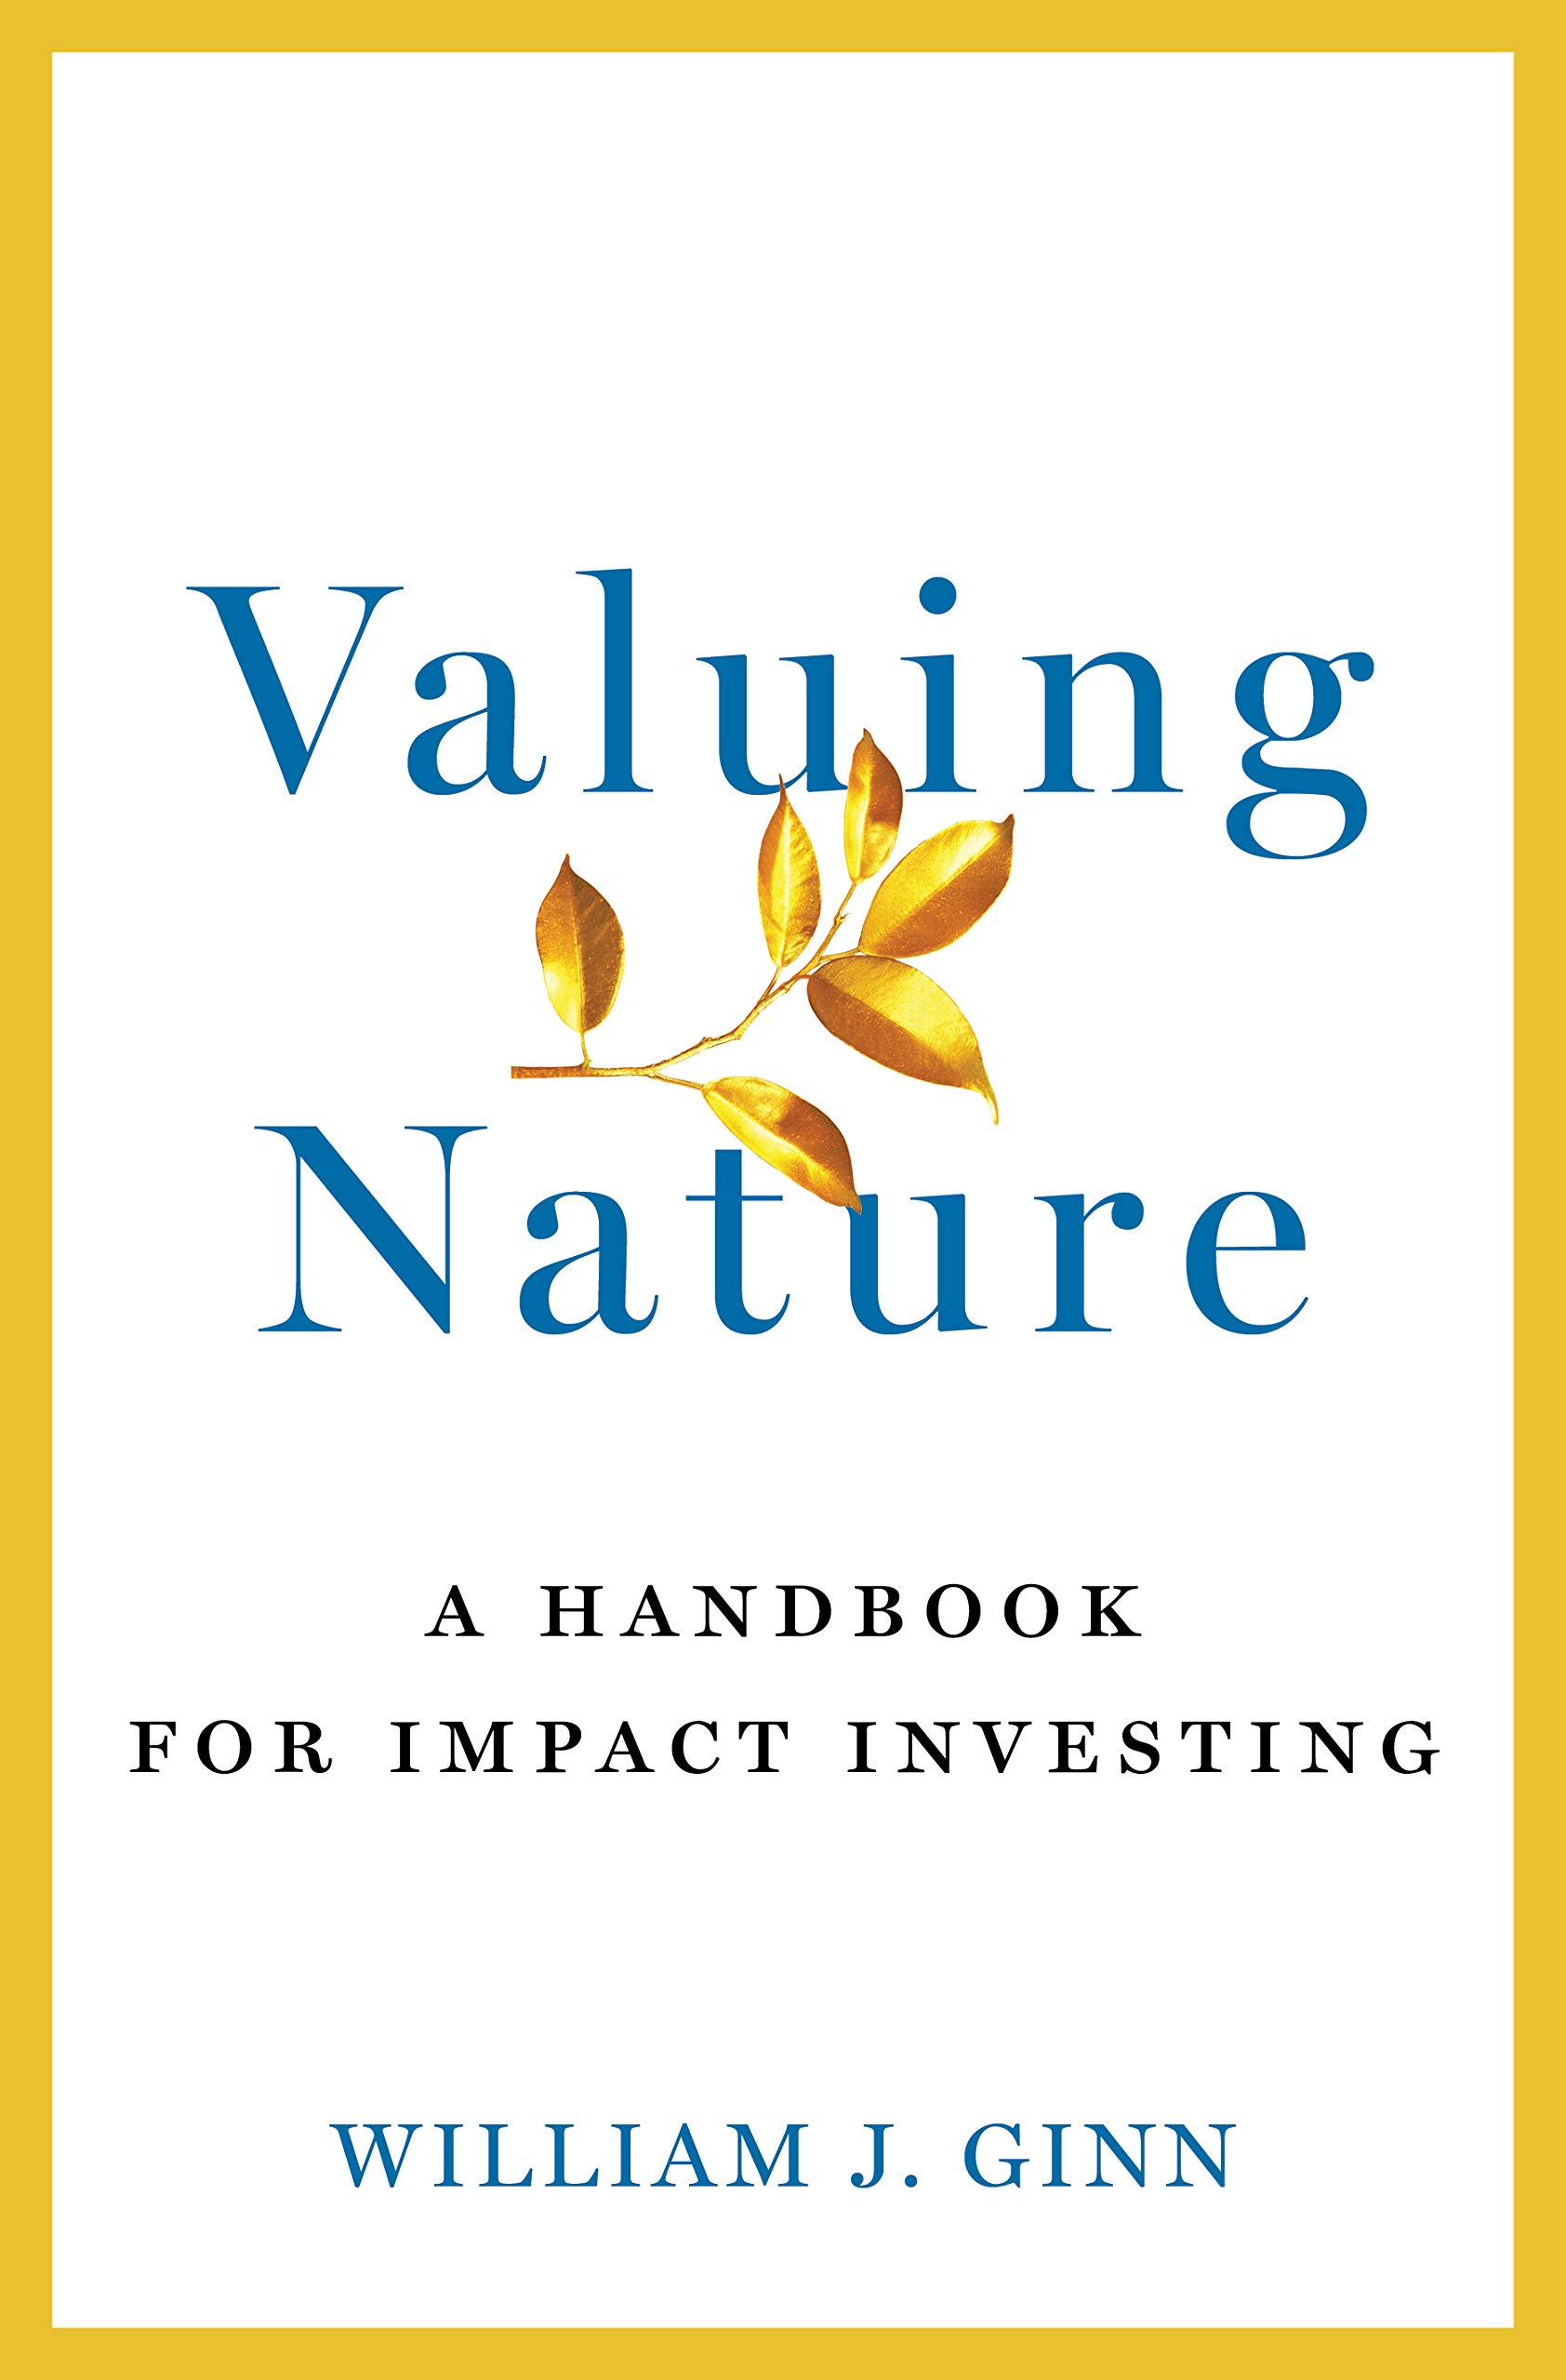 Valuing Nature: A Handbook for Impact Investing